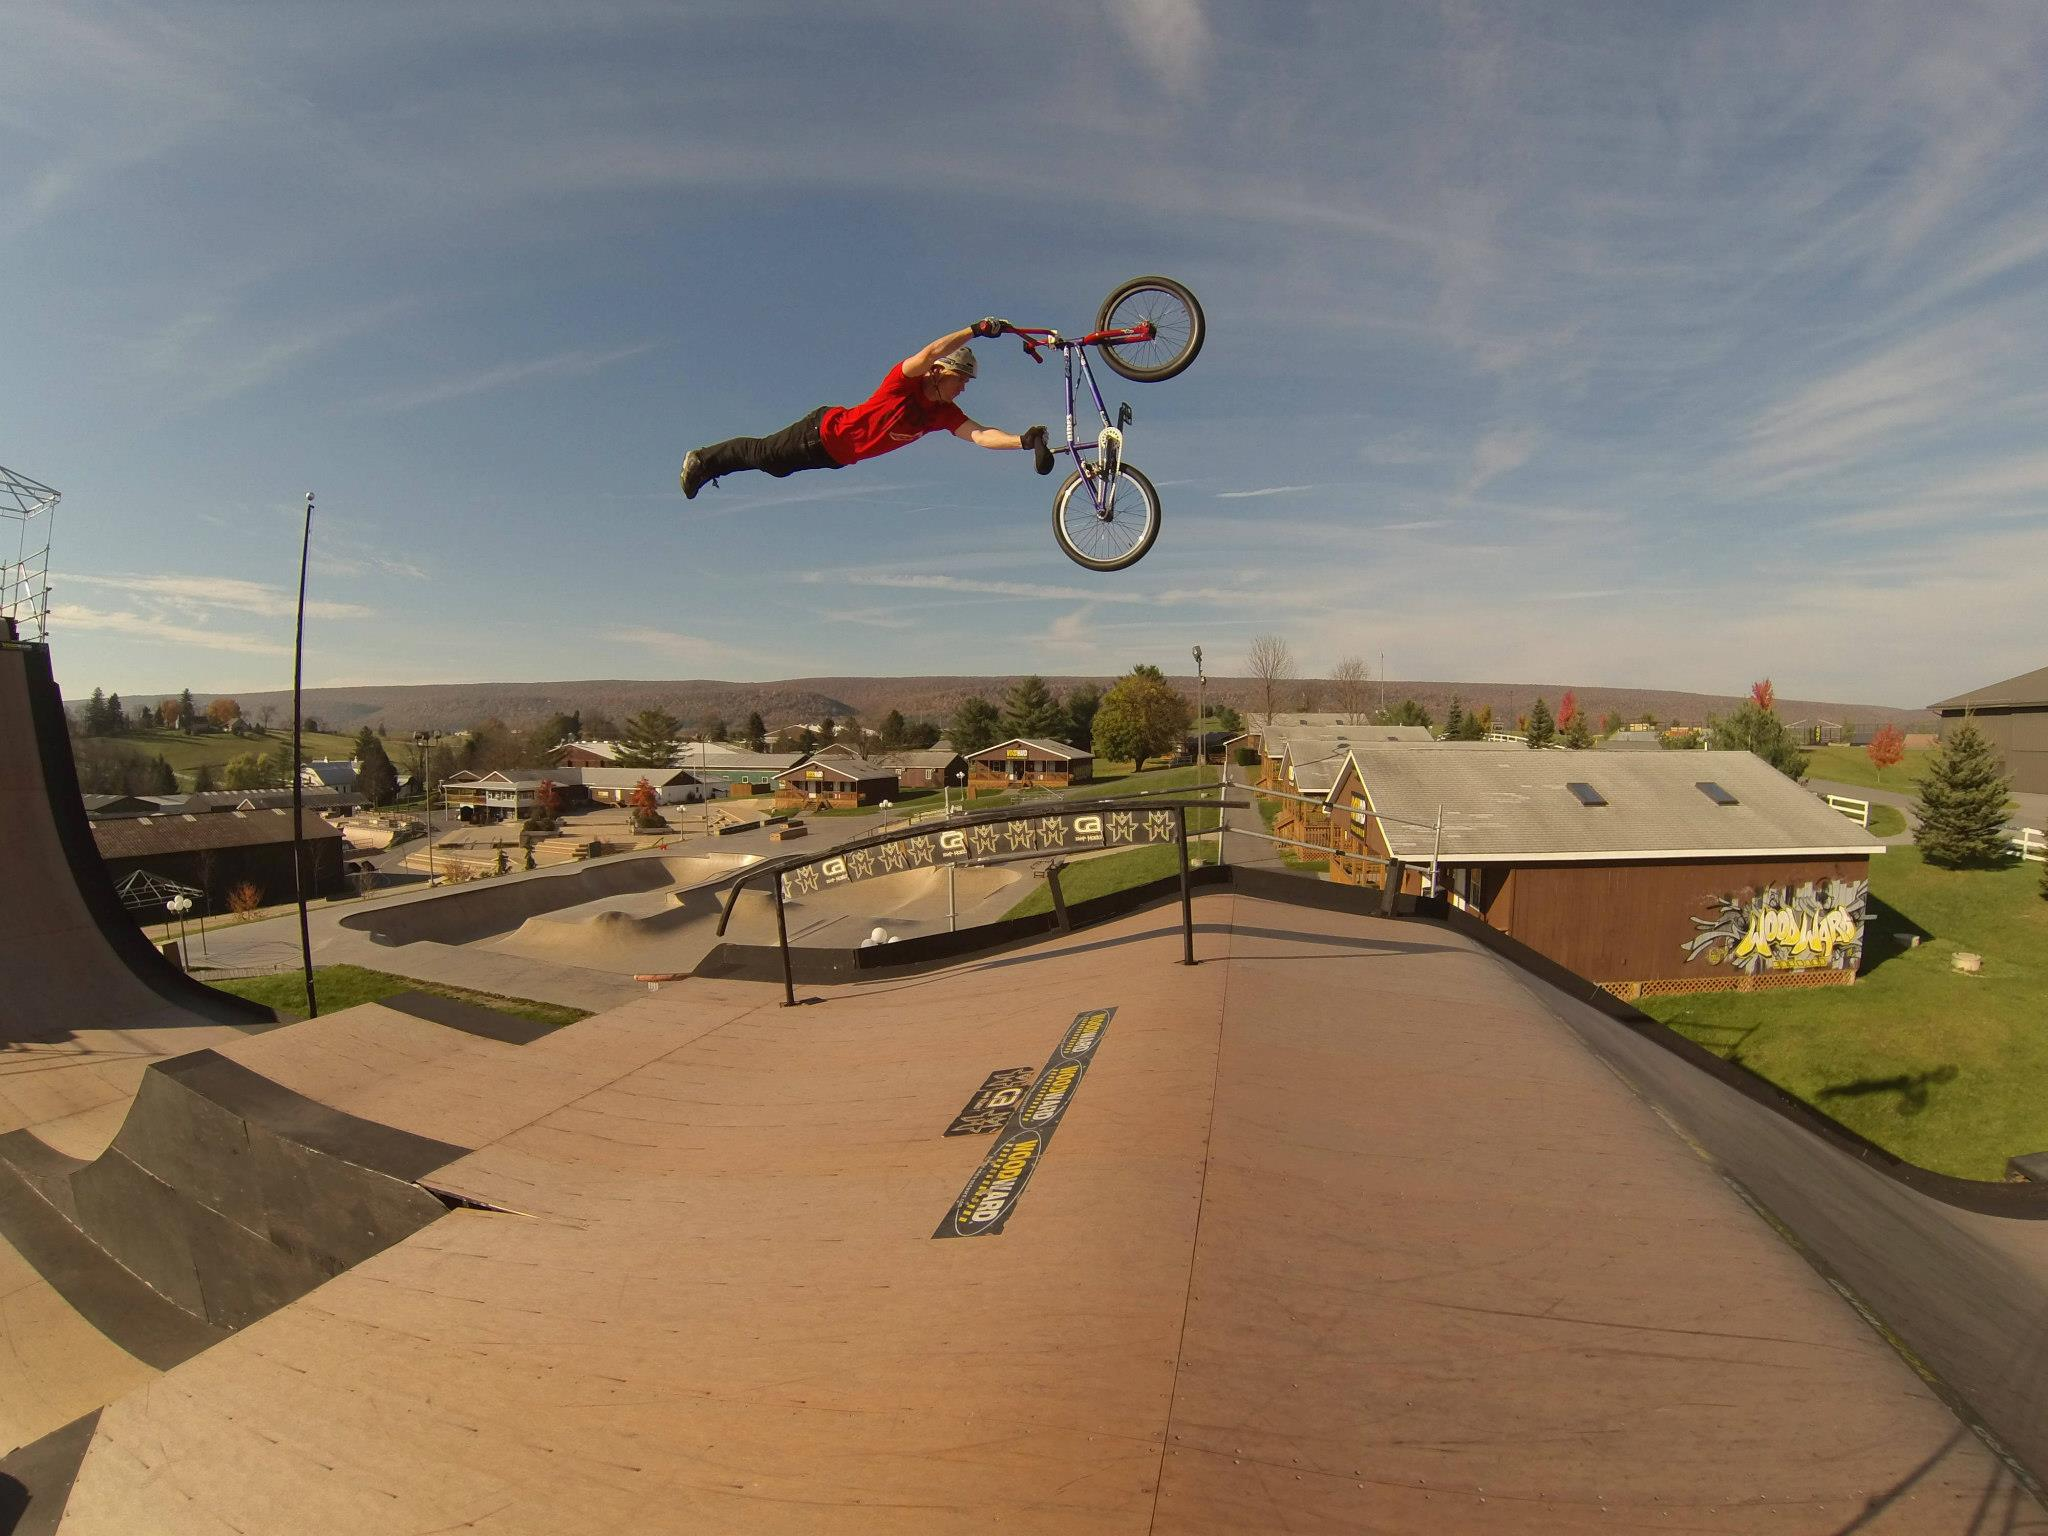 BMX Photo of the Day! 